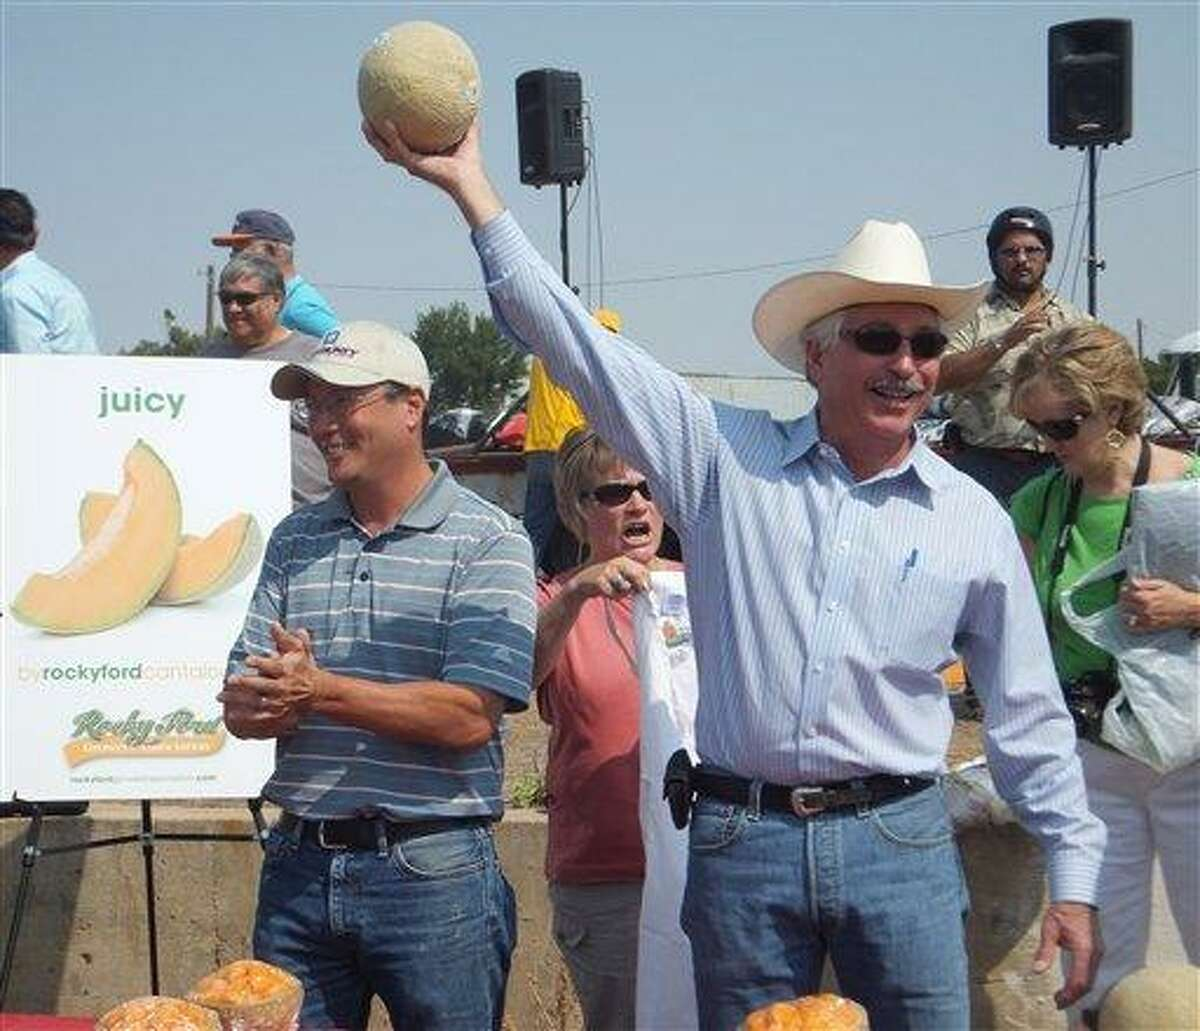 """Colorado Agriculture Secretary John Salazar, right, holds up a Rocky Ford cantaloupe and declares it """"the sweetest, best melon in the country"""" at the Arkansas Valley Fair in Rocky Ford, Colo., Saturday. A year after melons from southeast Colorado were the source of a nationwide listeria outbreak that killed 30 and sickened hundreds, growers in Rocky Ford have spent nearly $1 million in safety upgrades and say they're having a strong season with higher prices and strong demand. (AP Photo/Kristen Wyatt)"""